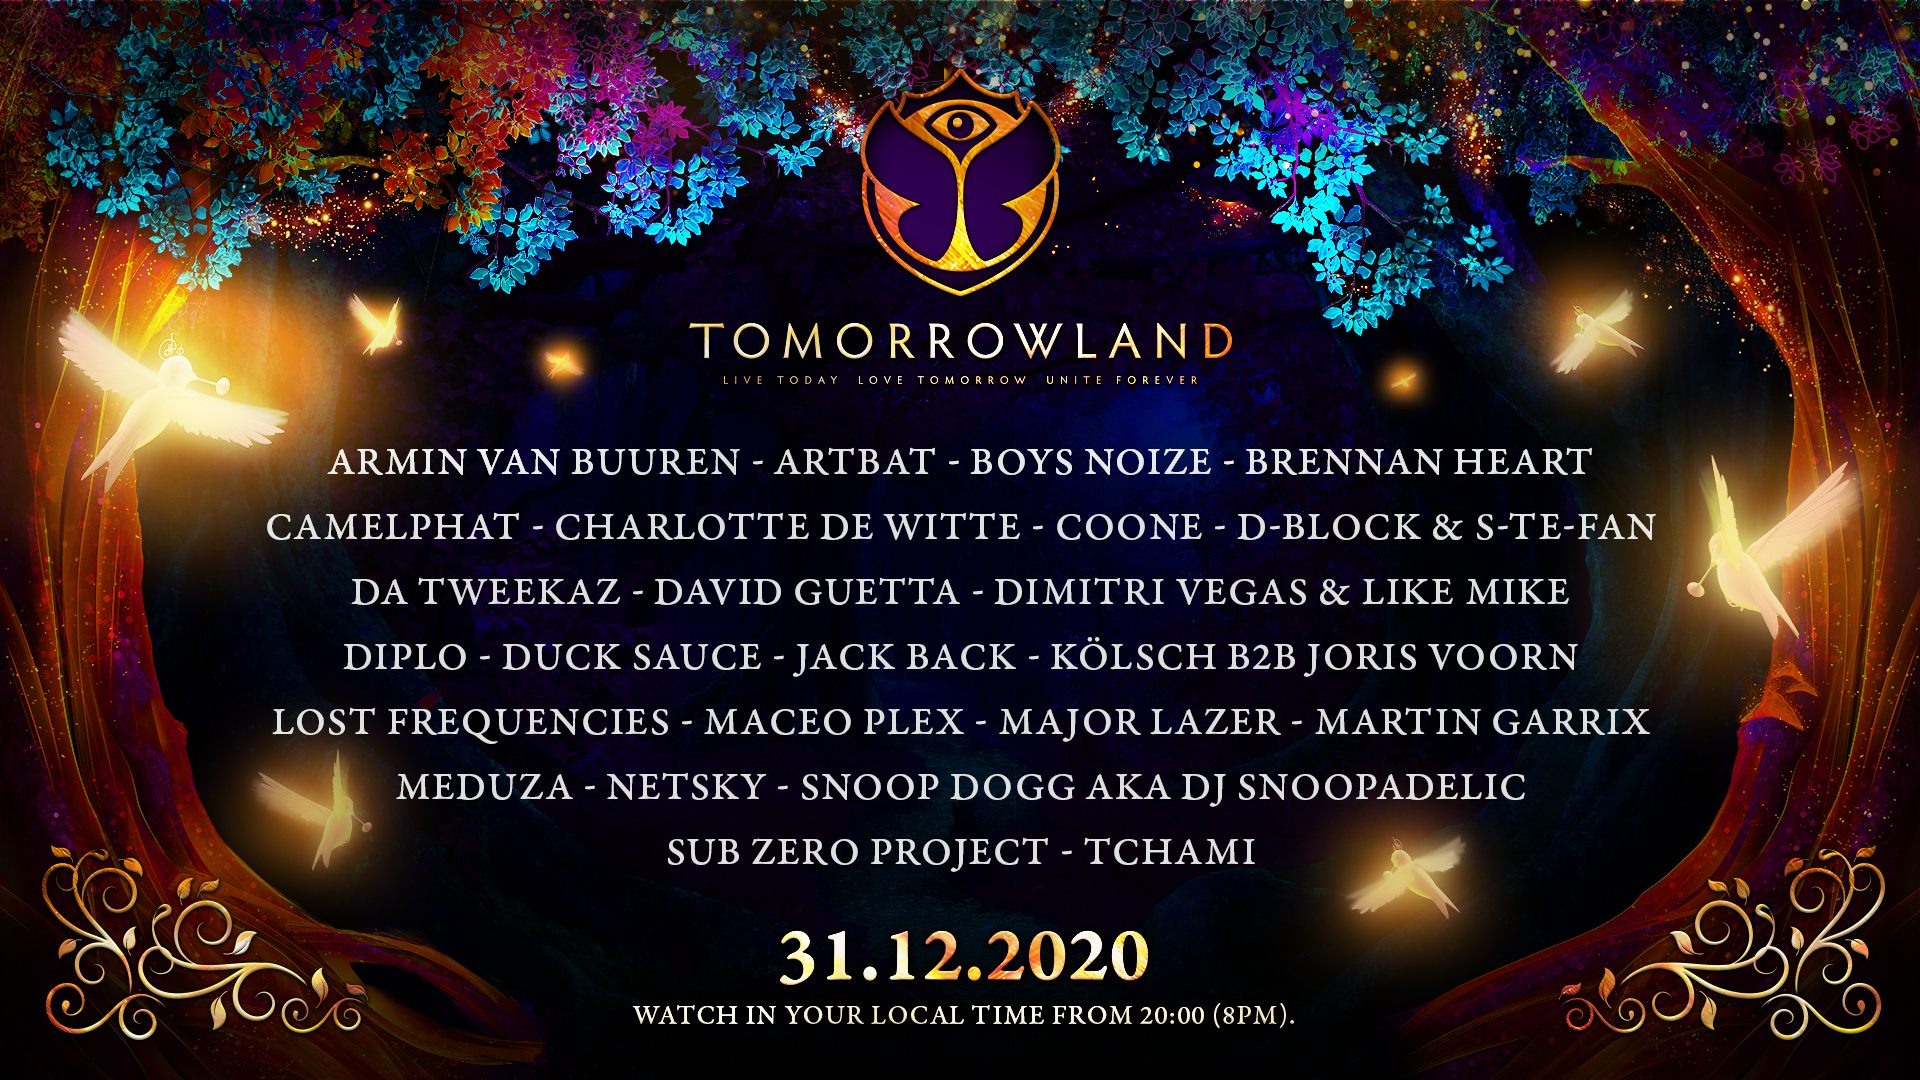 Tomorrowland Announce Magical New Year's Eve Celebration